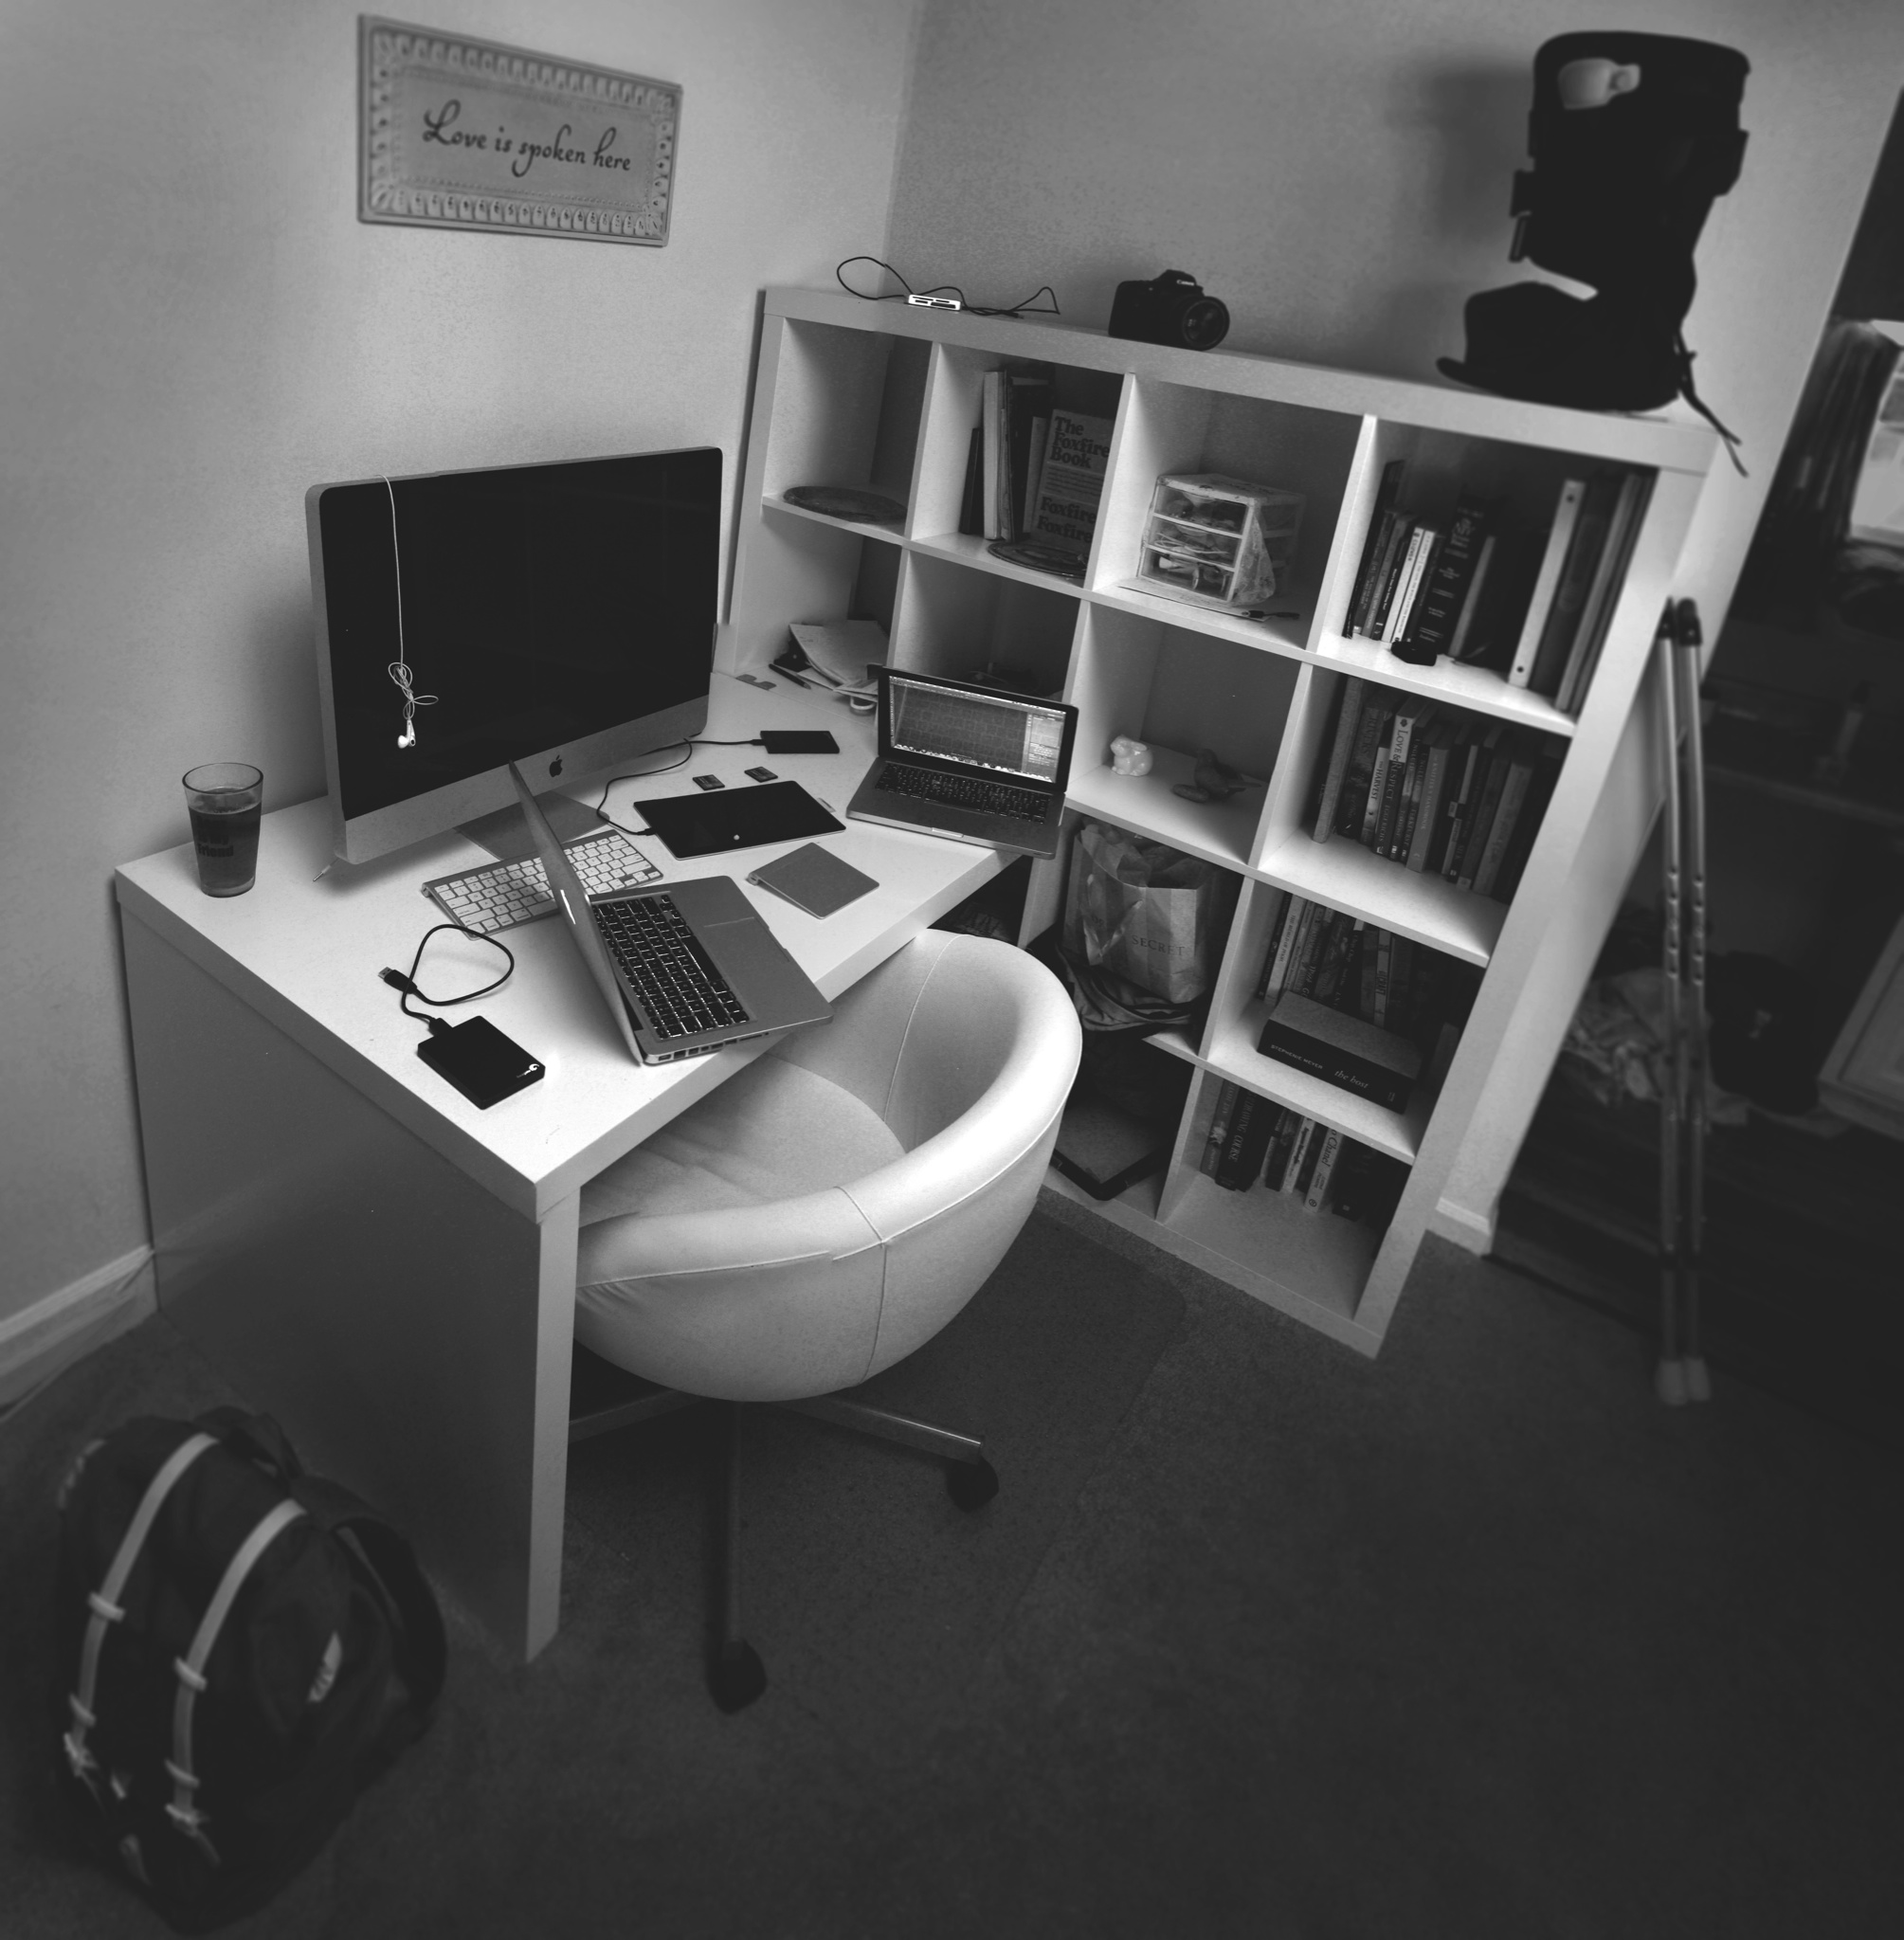 This was a photomerge of about 5 different photographs. I did this in order to give the viewer an upclose and wide perspective on my workspace.